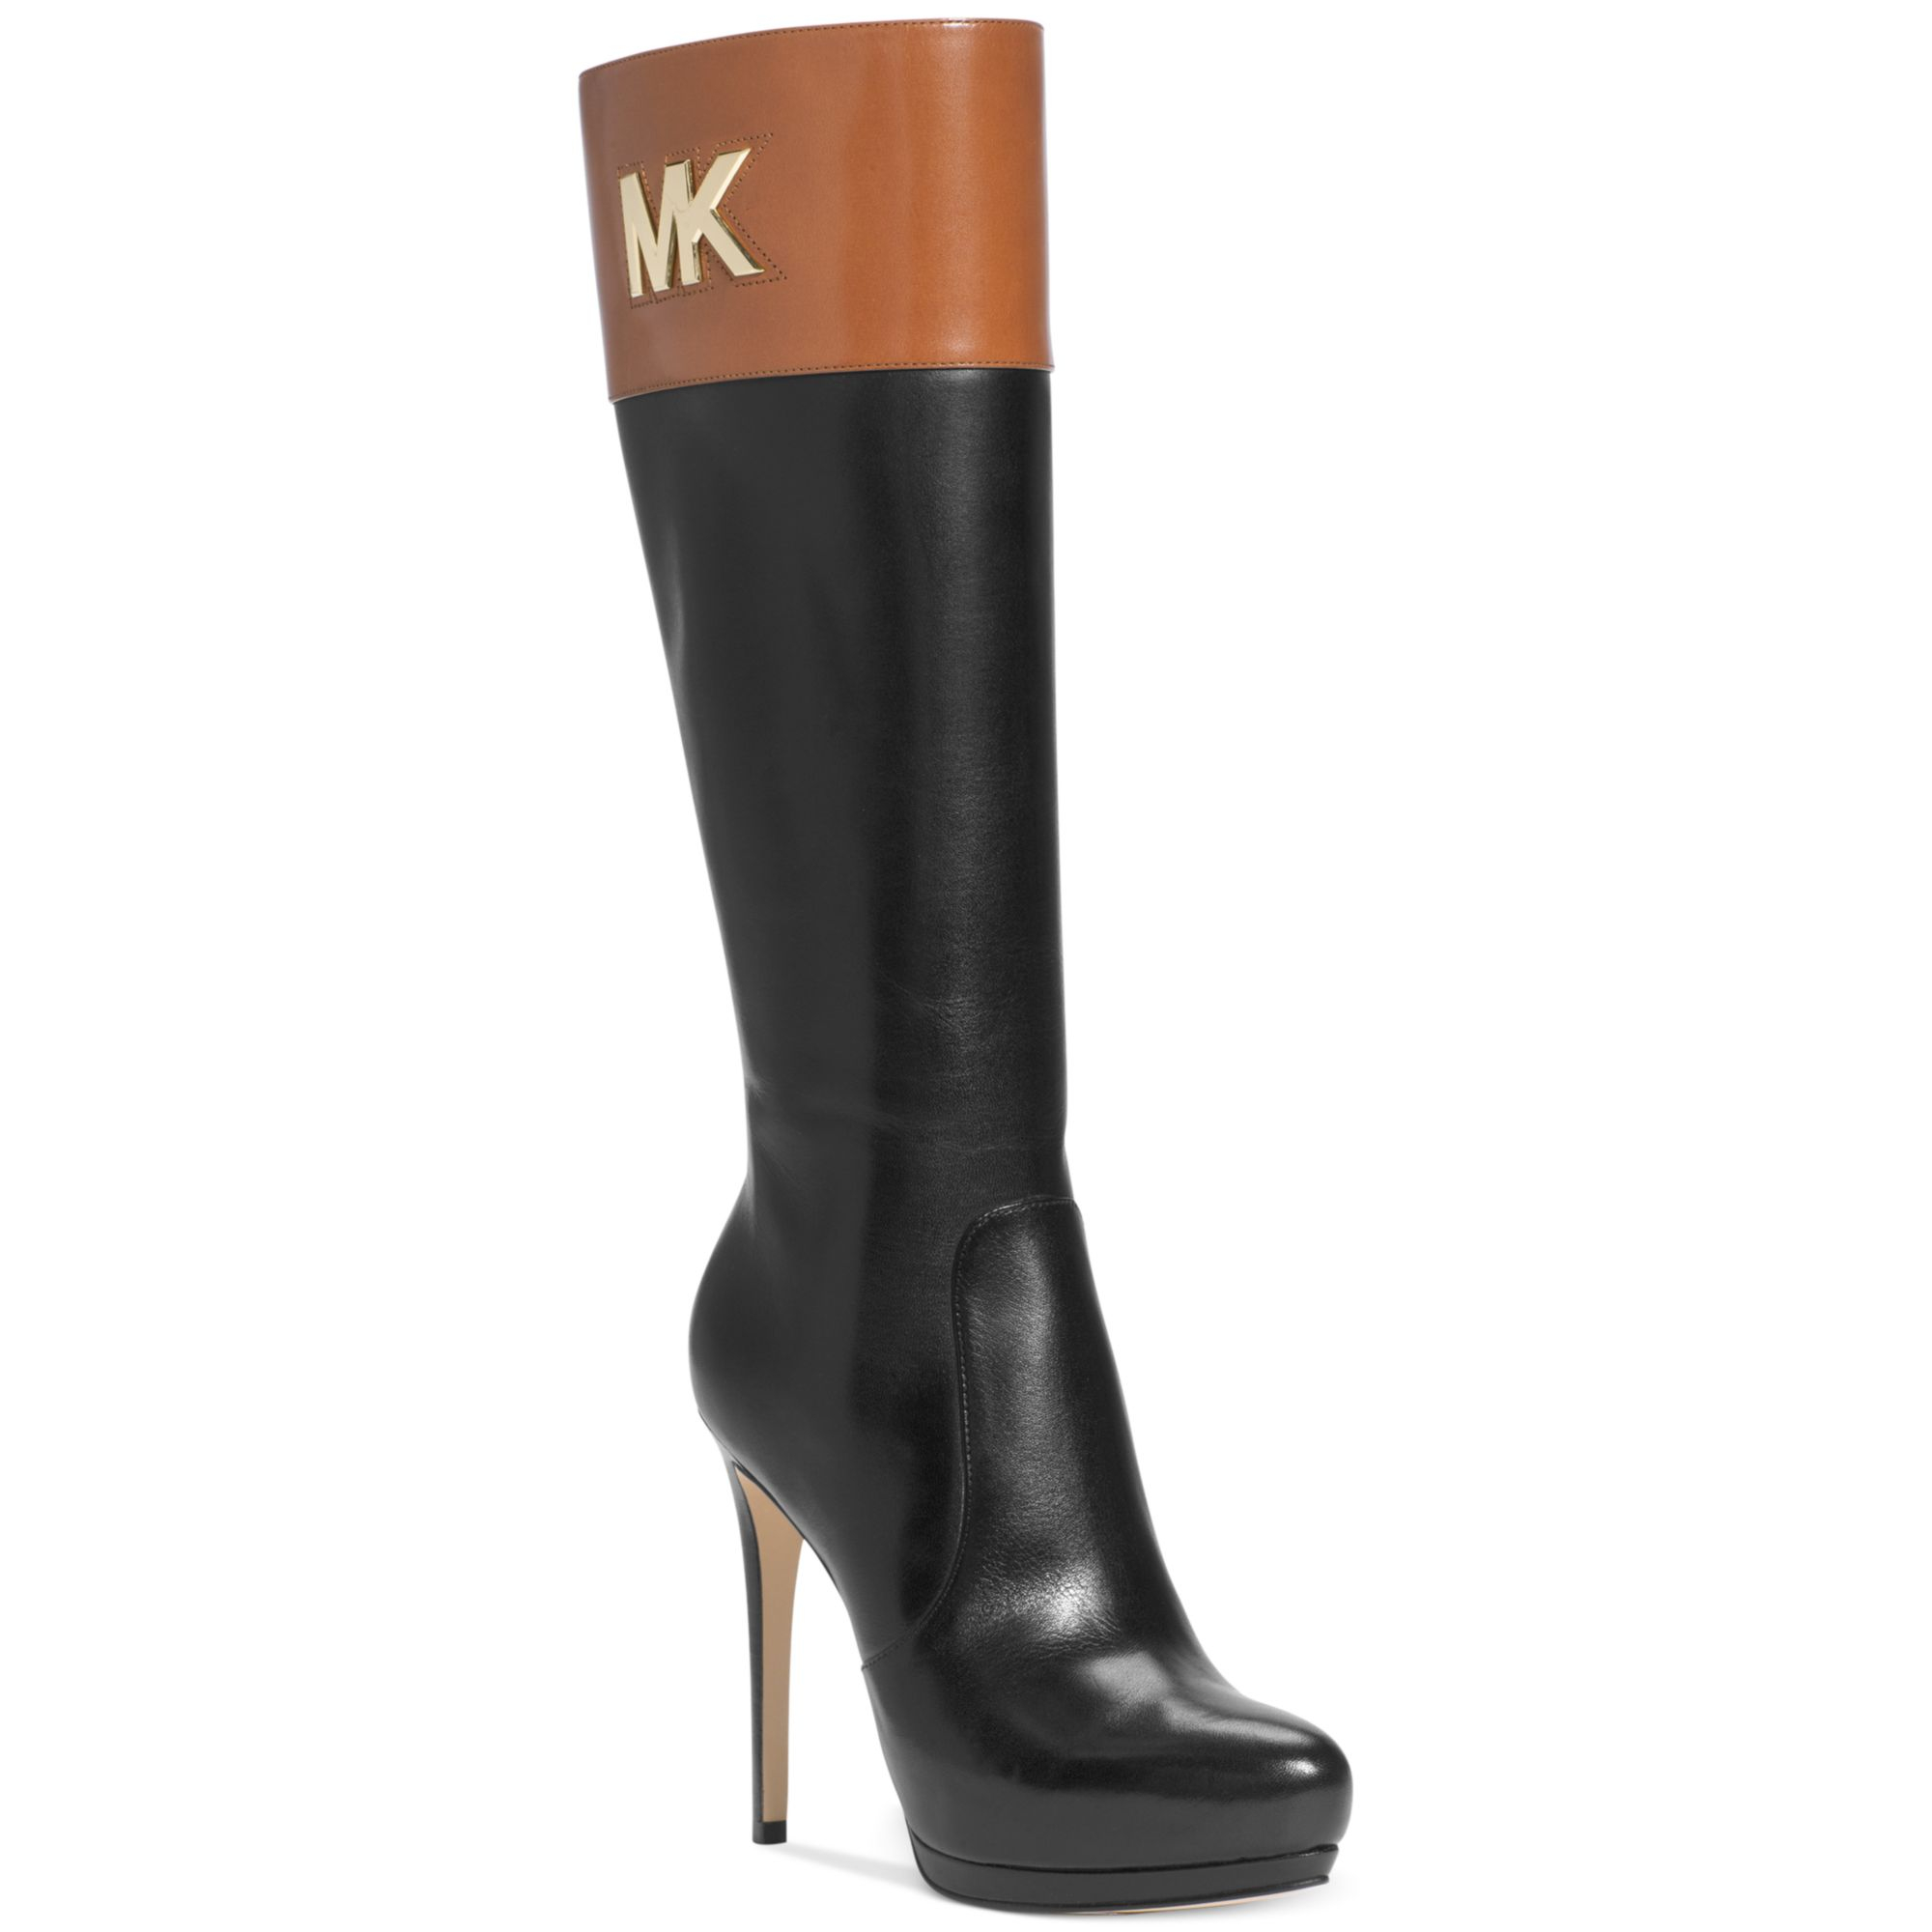 michael kors ankle boots in black brown lyst models